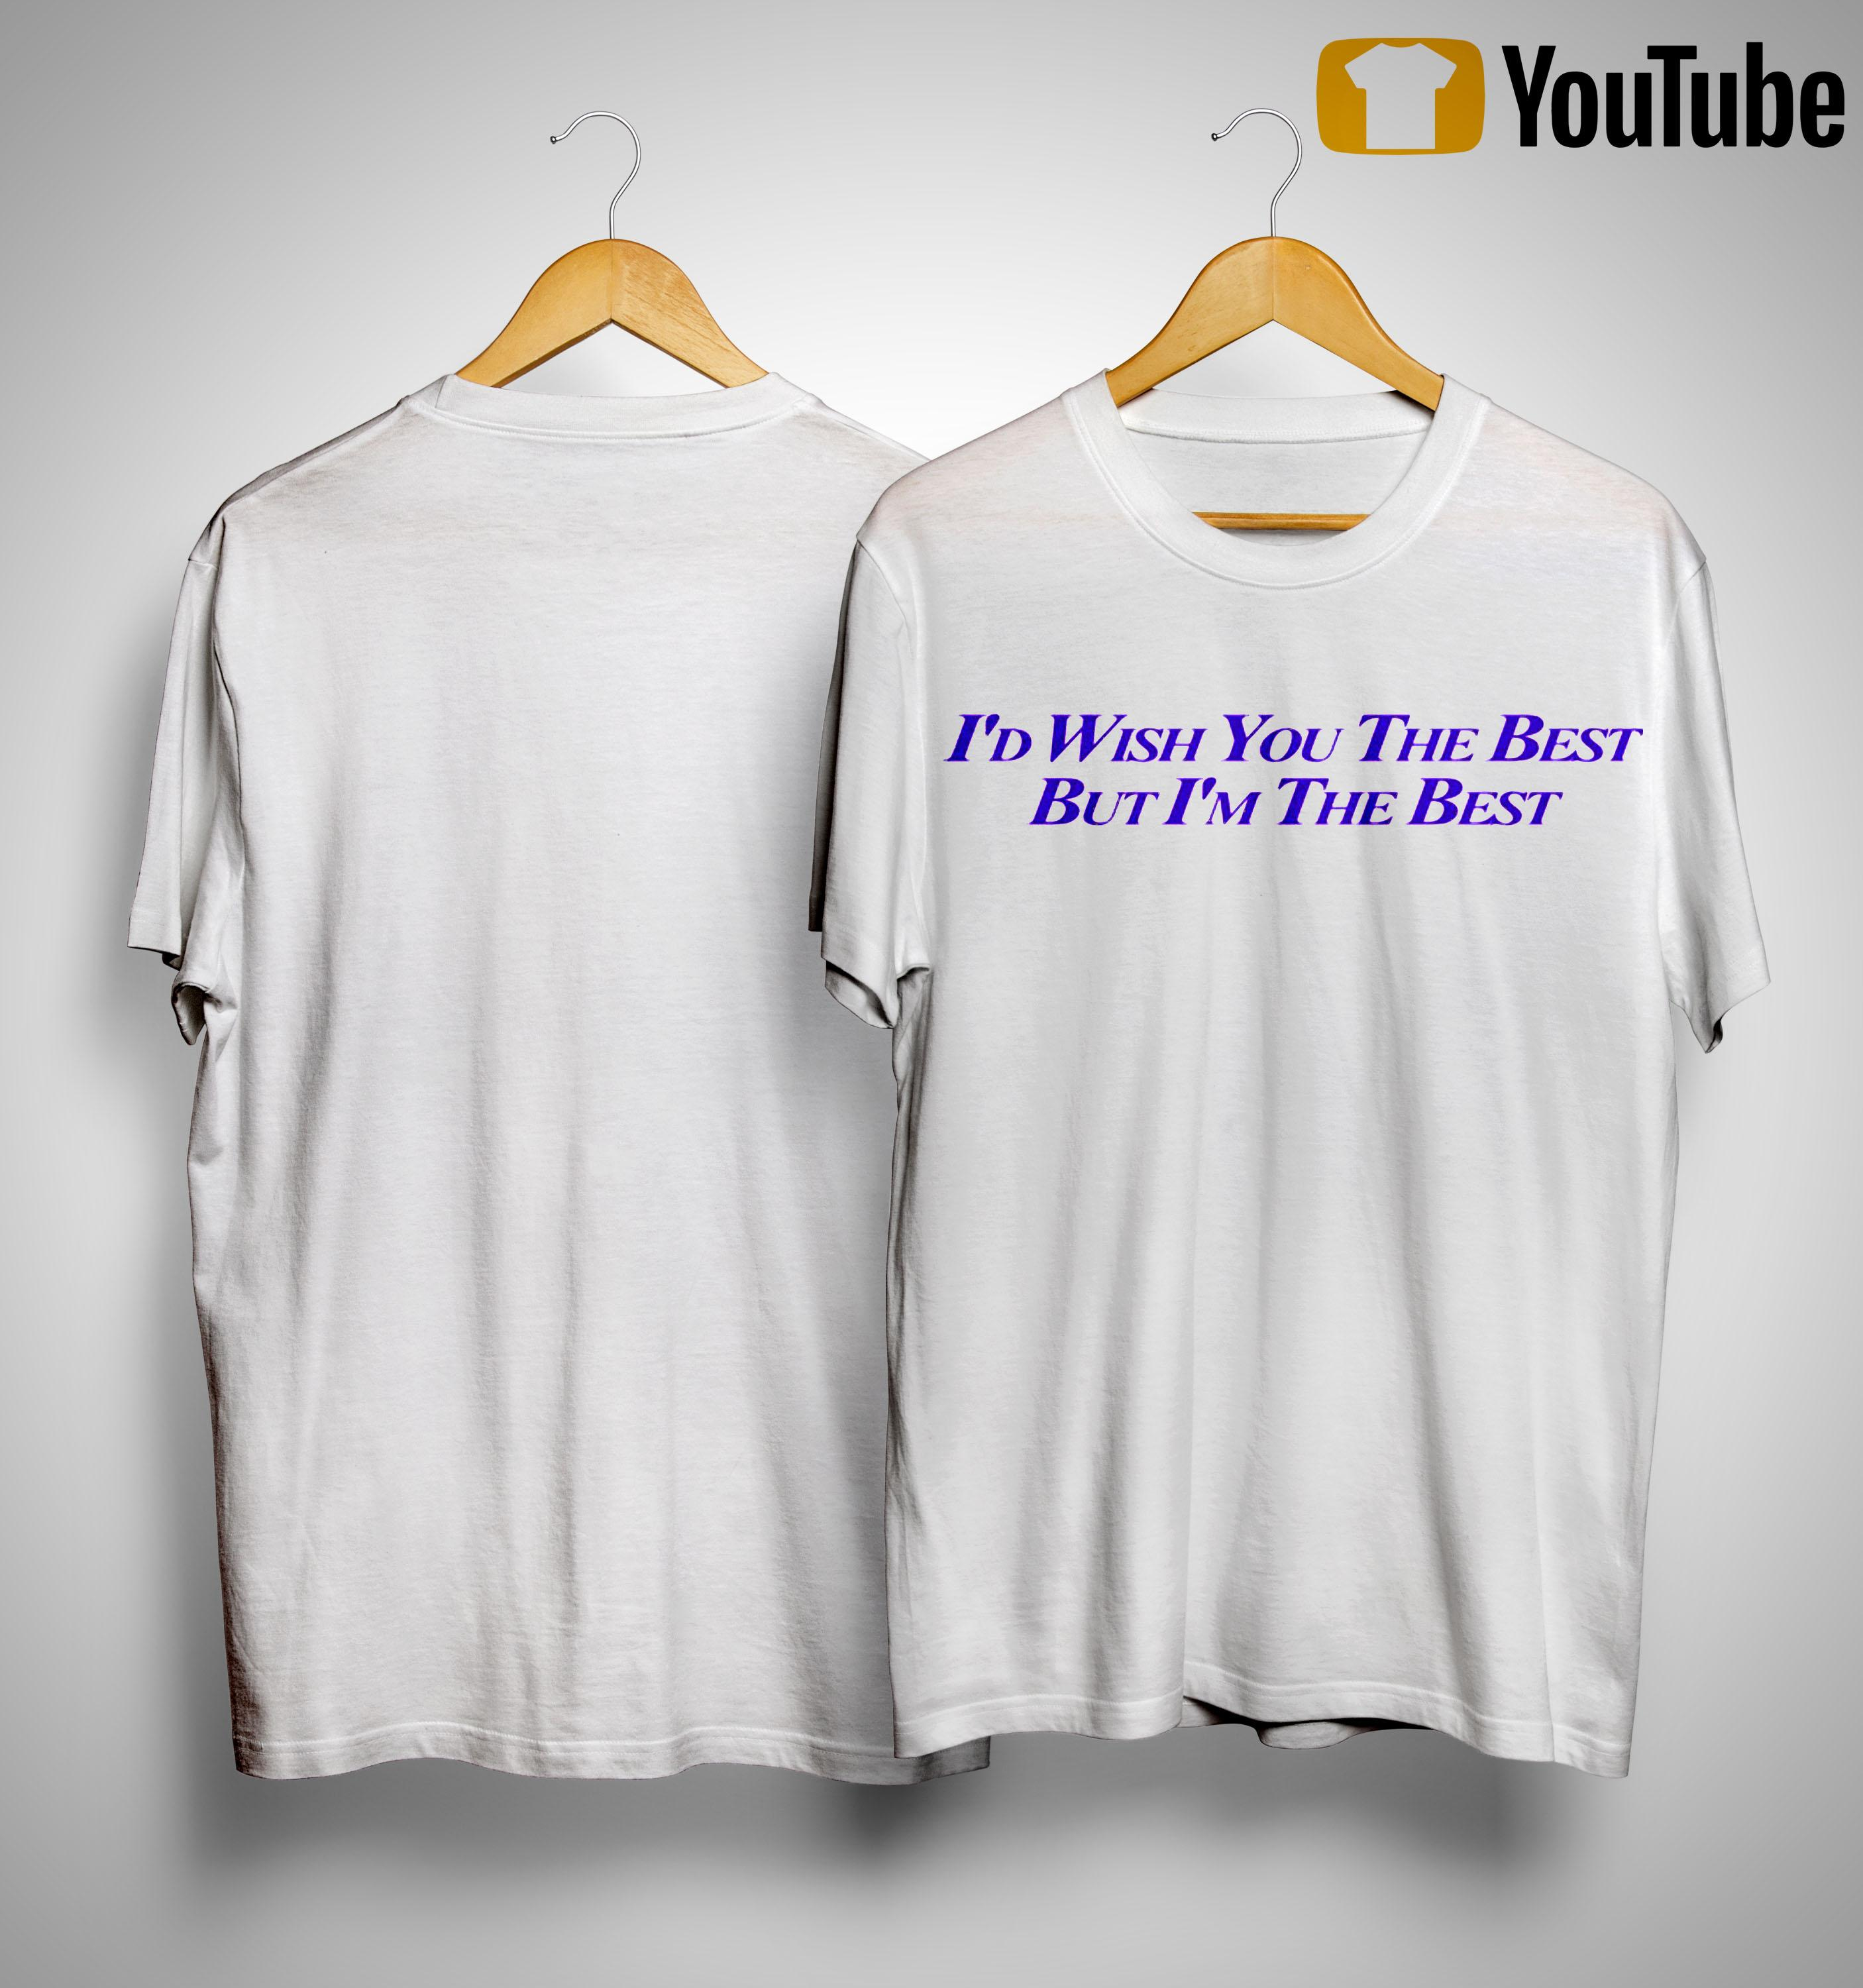 Miley Cyrus I'd Wish You The Best But I'm The Best Shirt